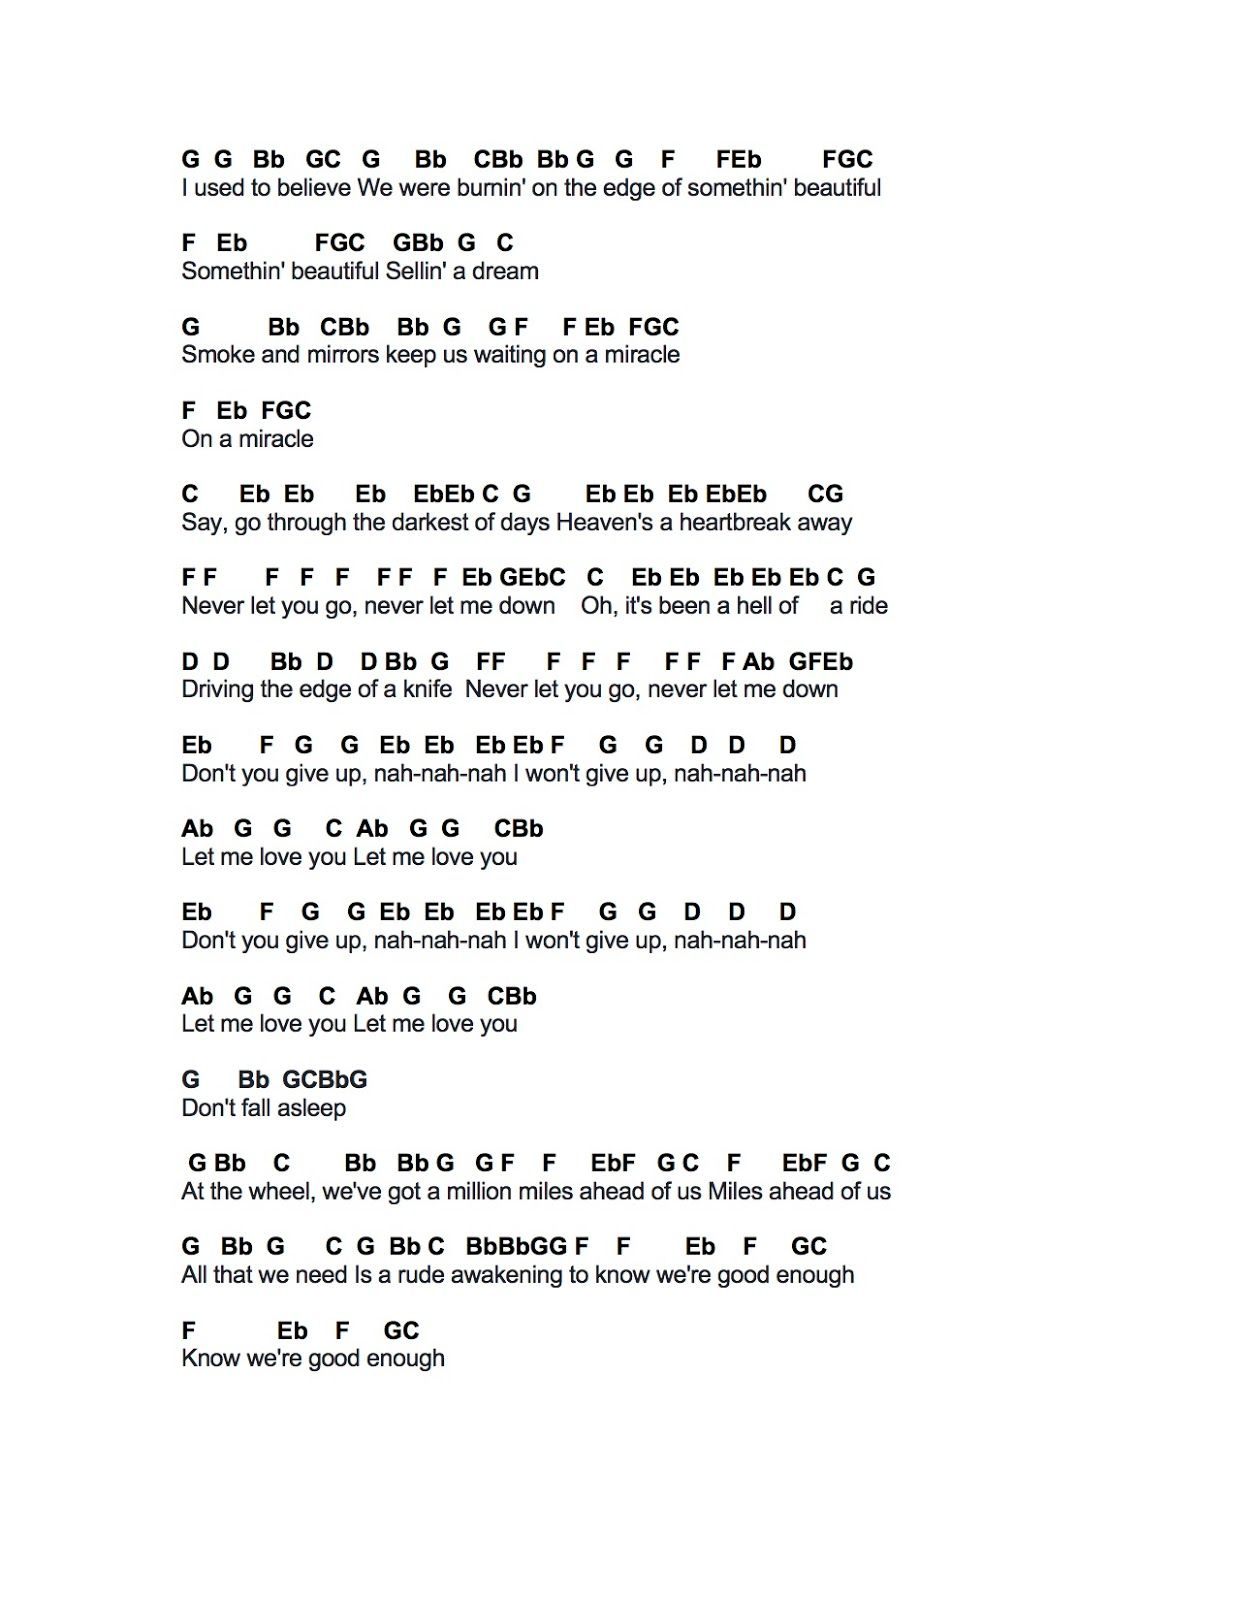 Pin by Mirielle on MUSICCC   Flute sheet music, Easy piano sheet